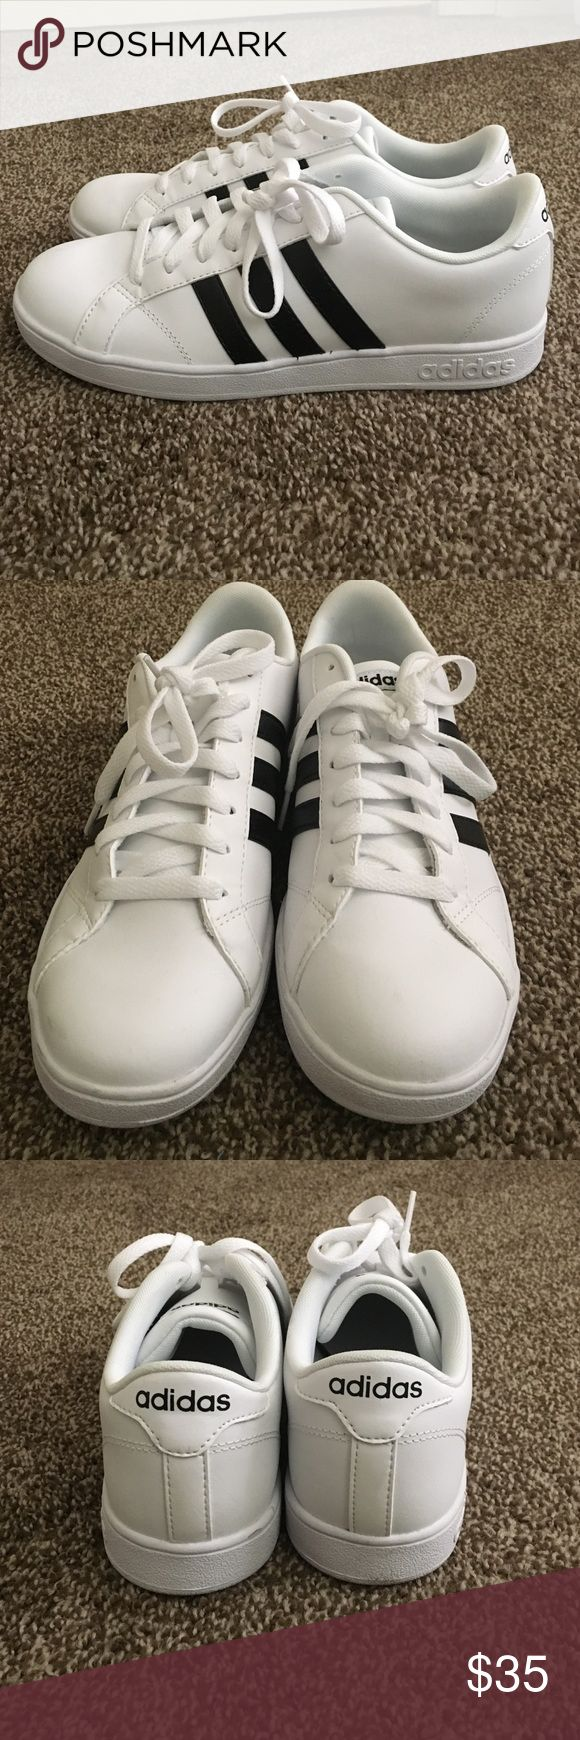 Adidas neo Shoes A white Adidas sneaker with the original black stripes and a cloudfoam footbed! Has only been wore once. Adidas Shoes Sneakers